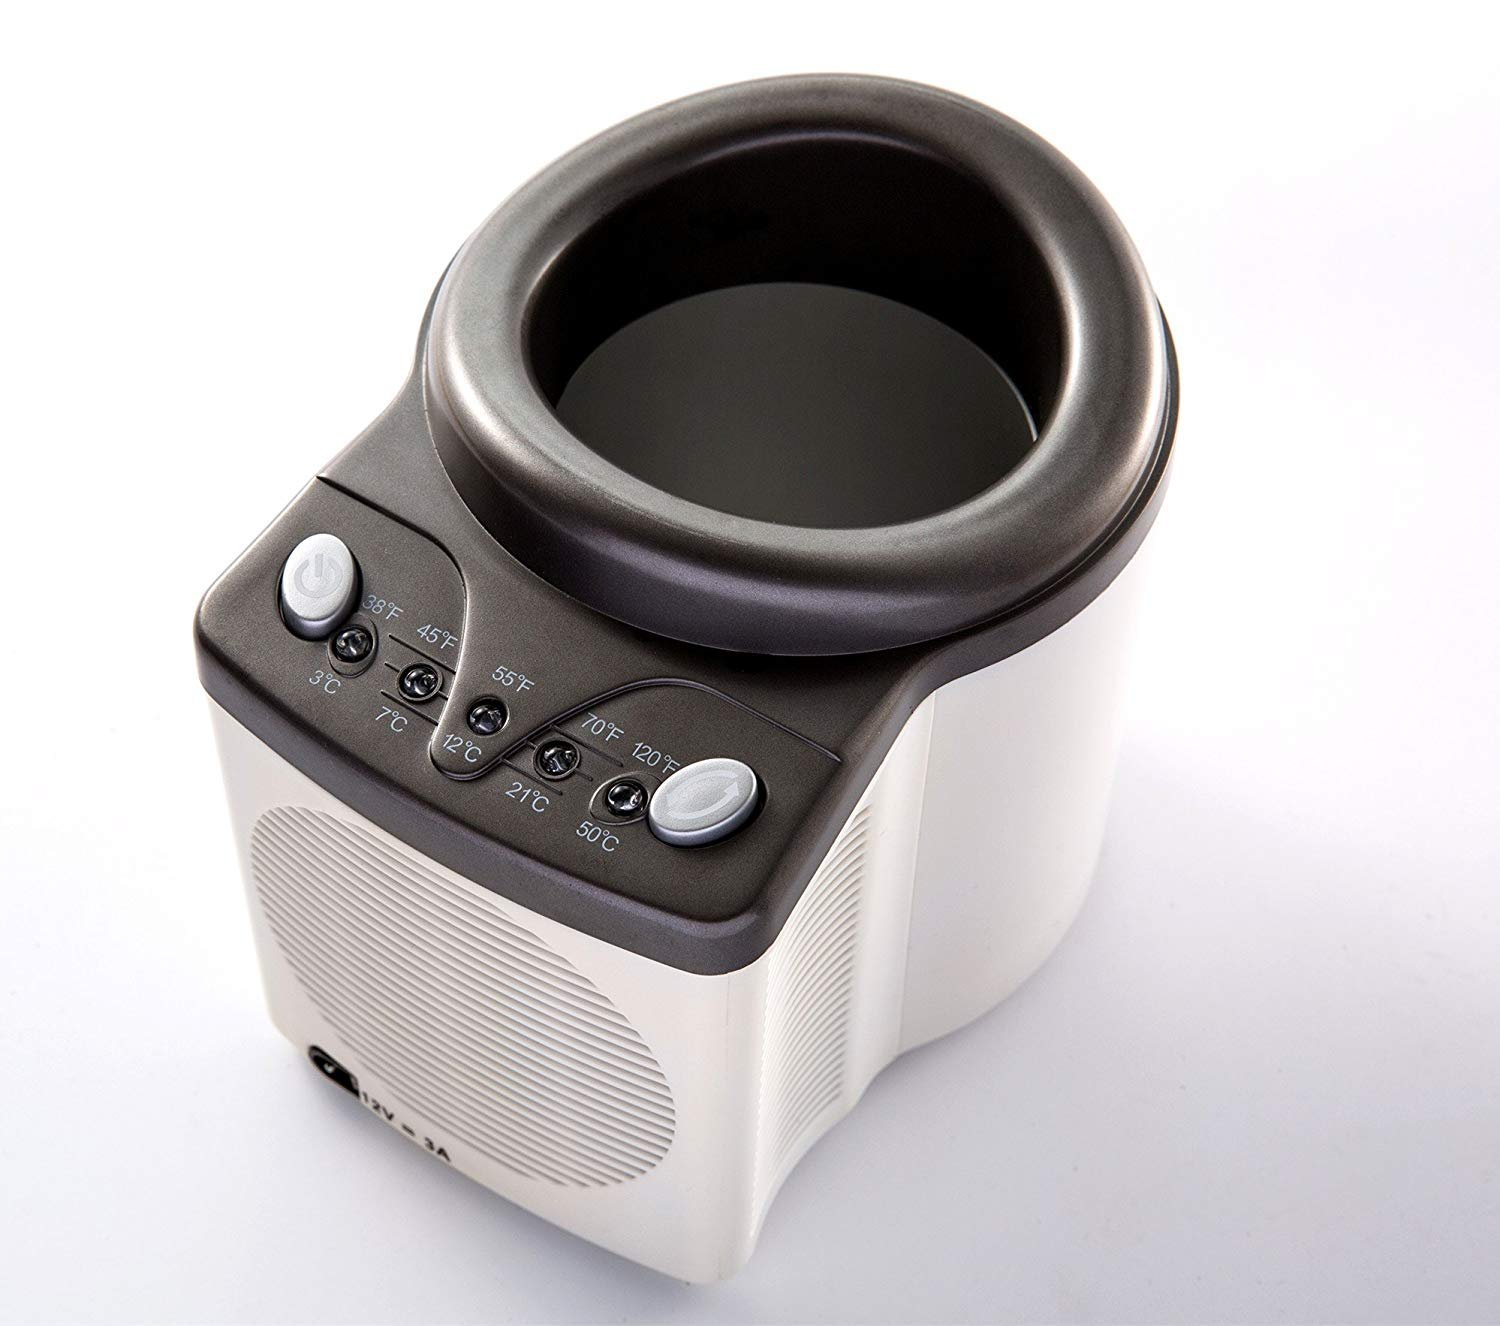 FLYZOE Beverage Cooler and Warmer by FLYZOE (Image #3)